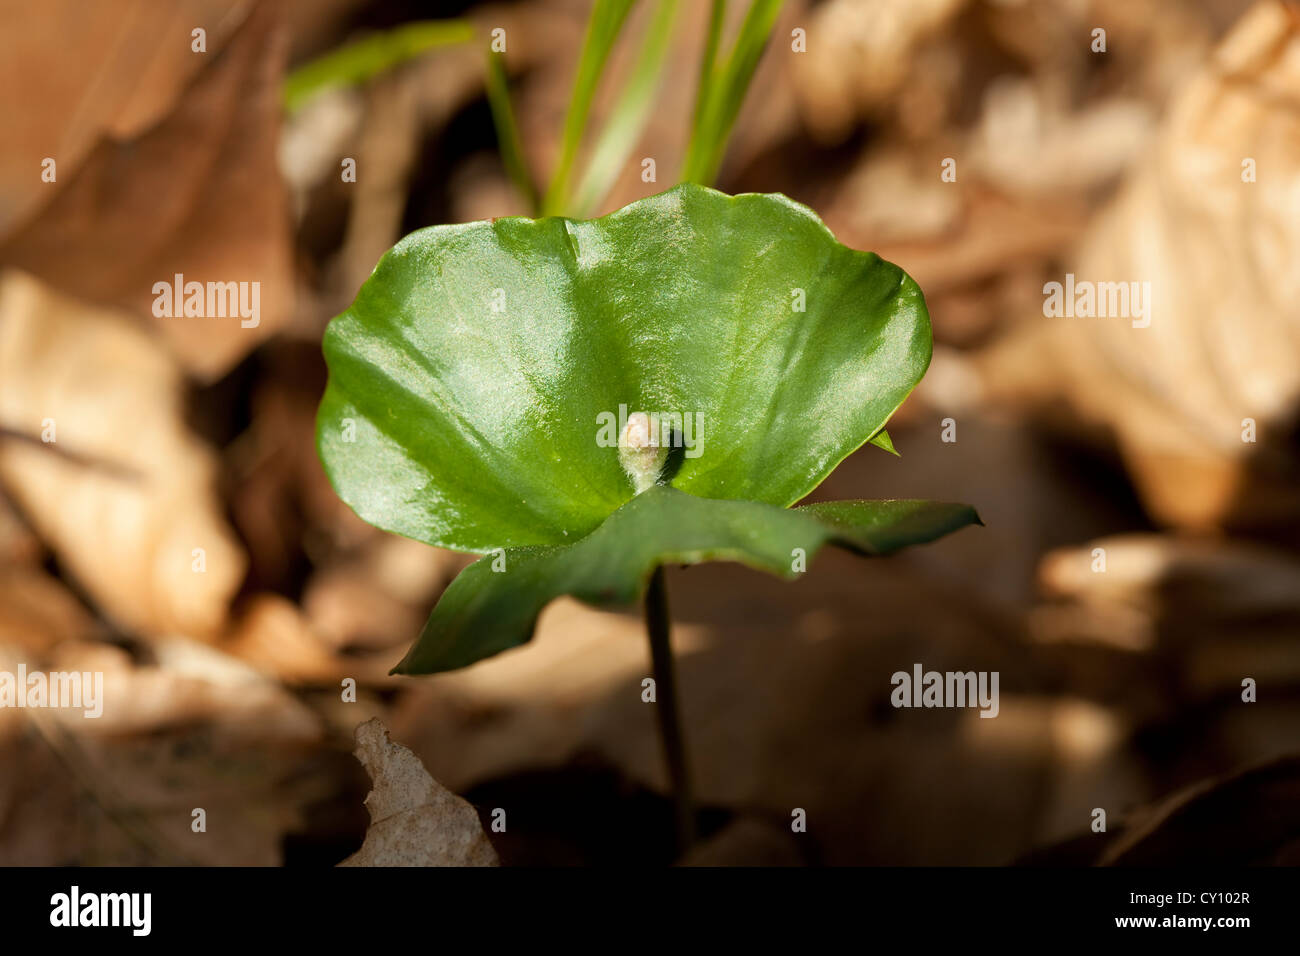 young seedling beech in forest on dry leaf - Stock Image